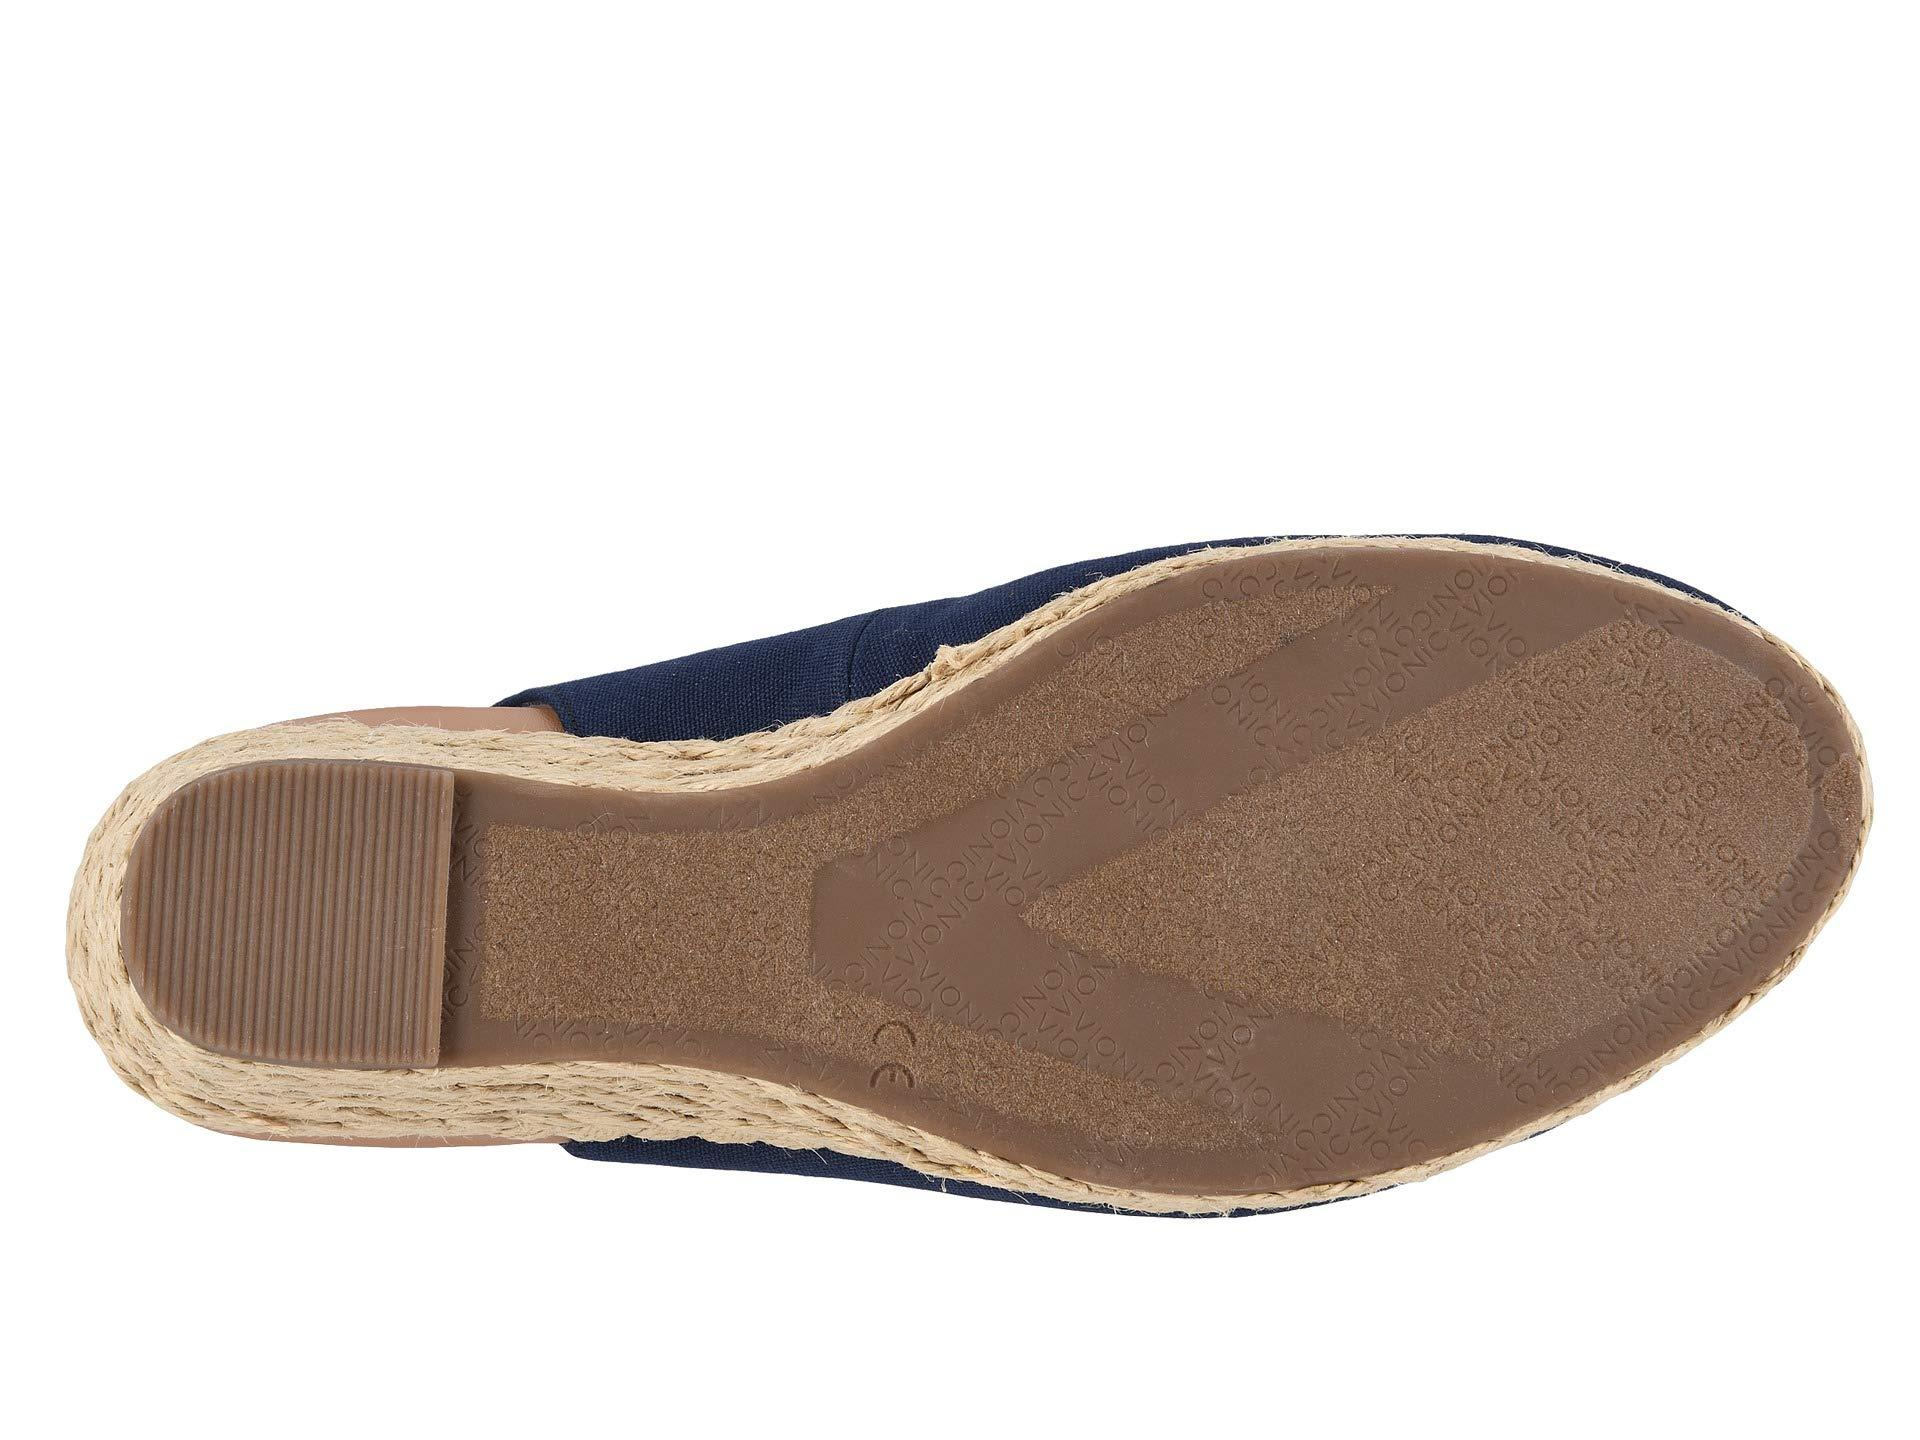 90355ab5829 Vionic Coralina (olive) Women's Wedge Shoes in Blue - Lyst